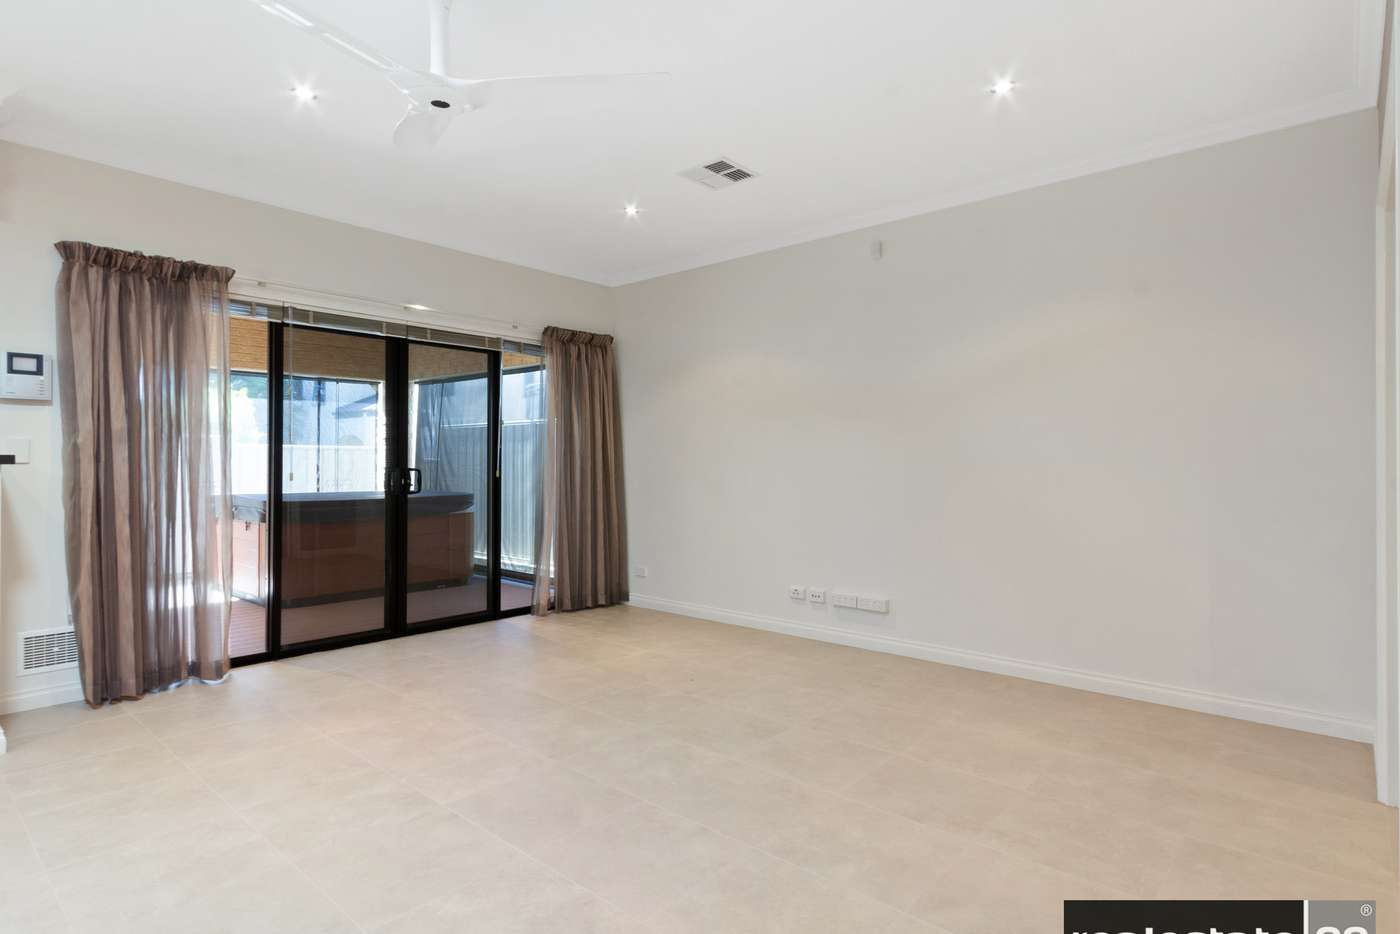 Seventh view of Homely house listing, 26A Fairway West, Yokine WA 6060